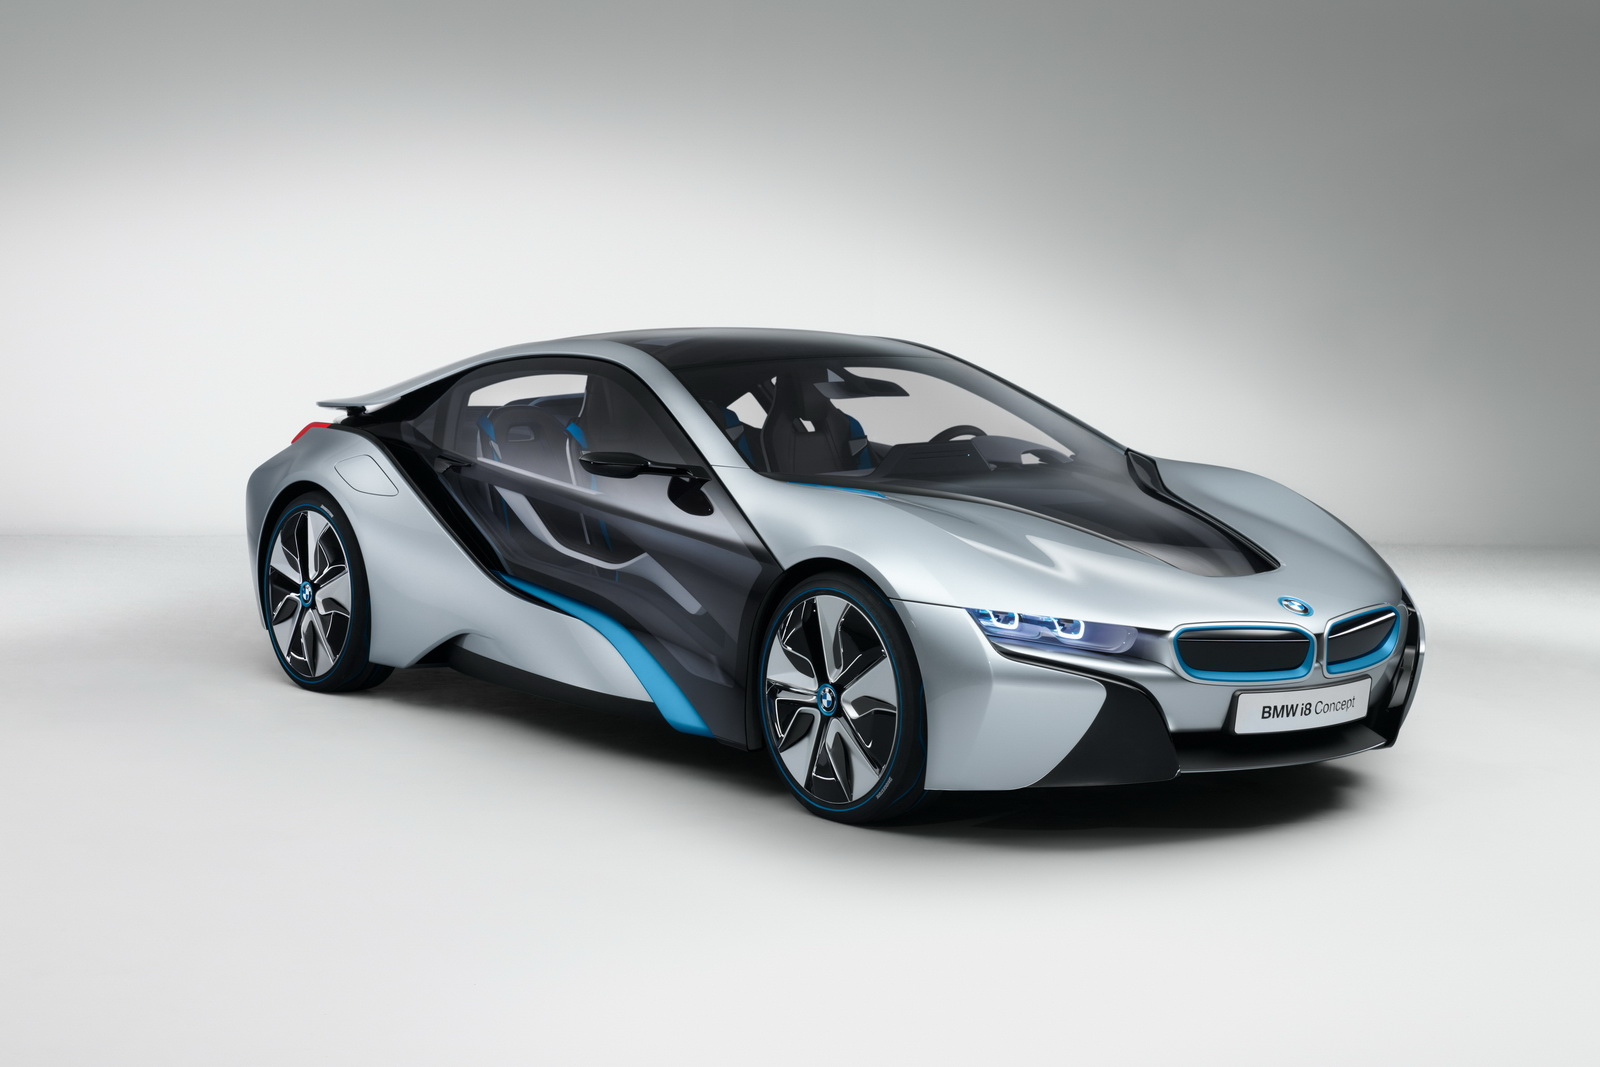 1600x1067 - BMW i3 Concept Wallpapers 25